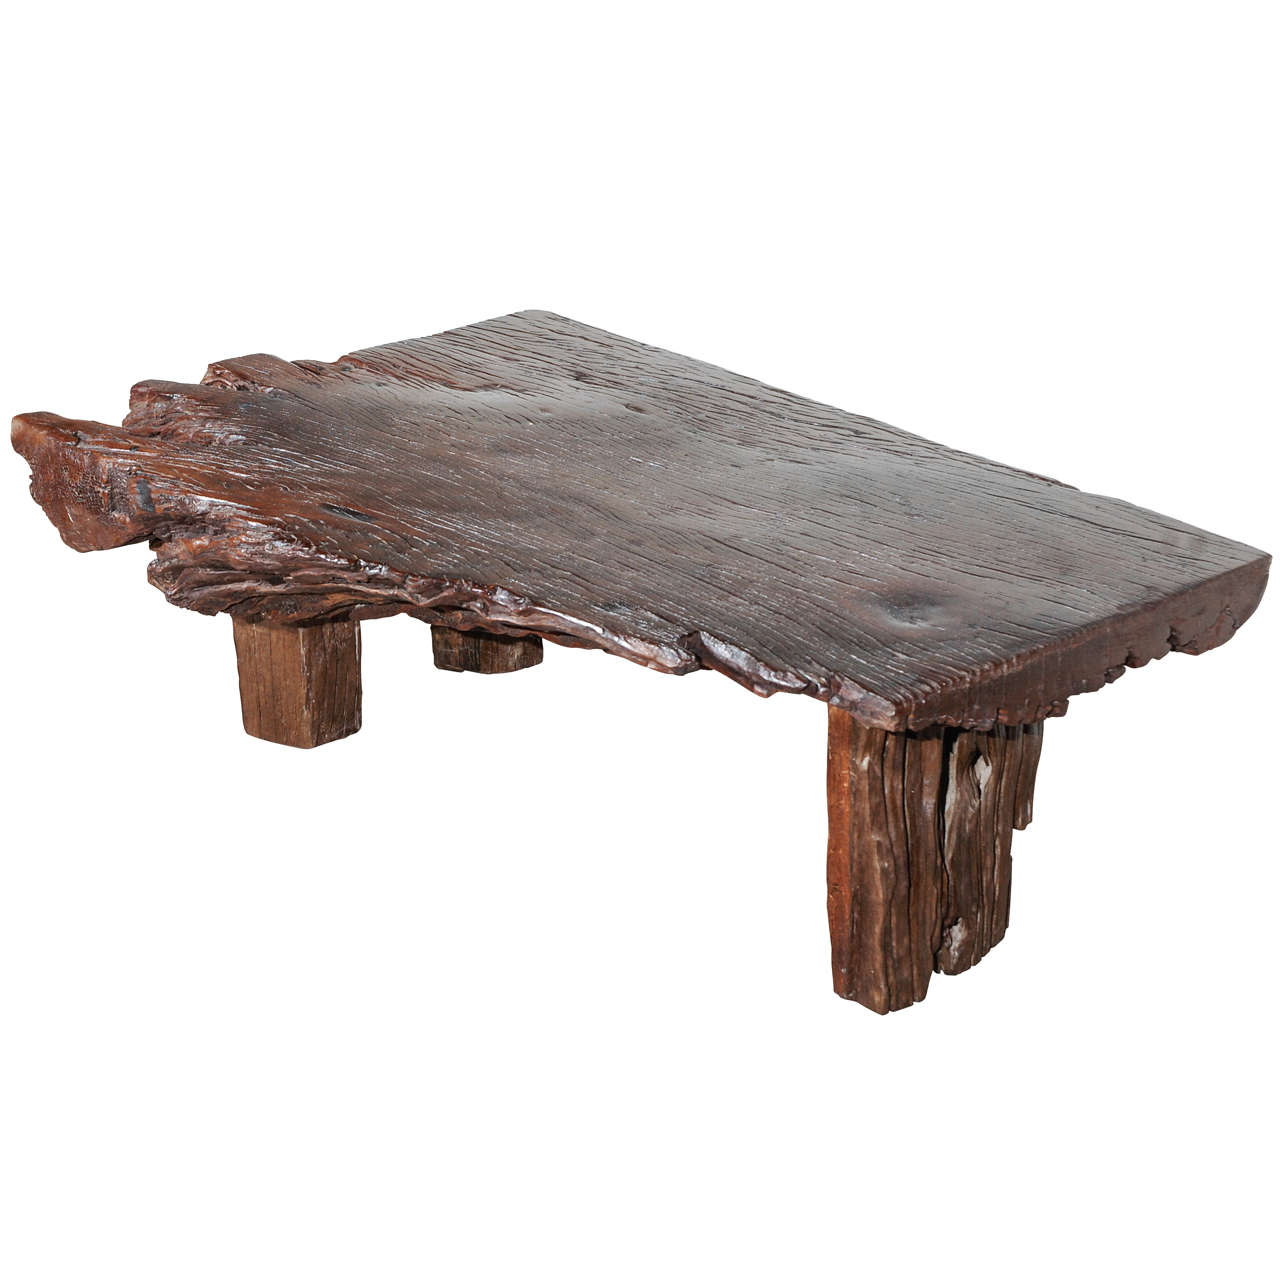 Reclaimed wood slab coffee table for sale at 1stdibs for Wooden coffee tables images